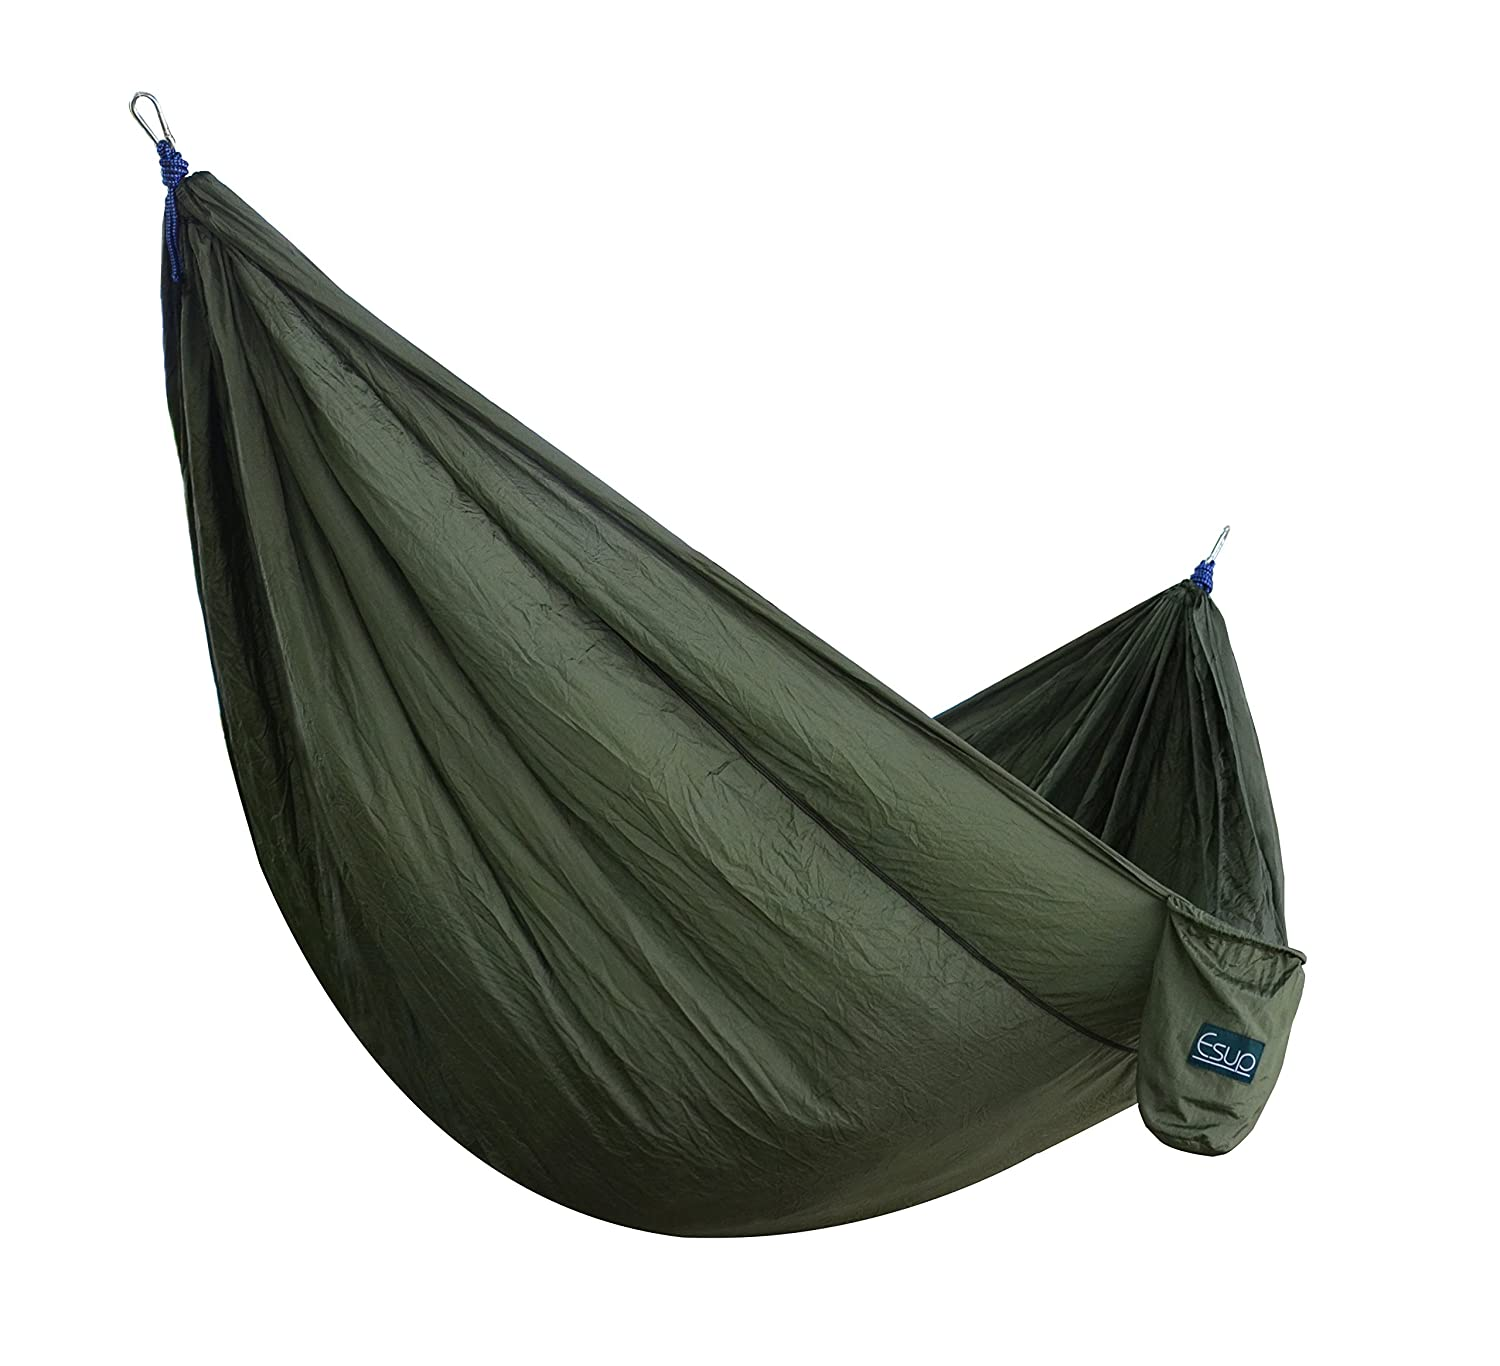 outdoors deal they on eta much sale liked it trip my camping gallery forums as up com me good hammock might back for over woot boys order our a saw were few more